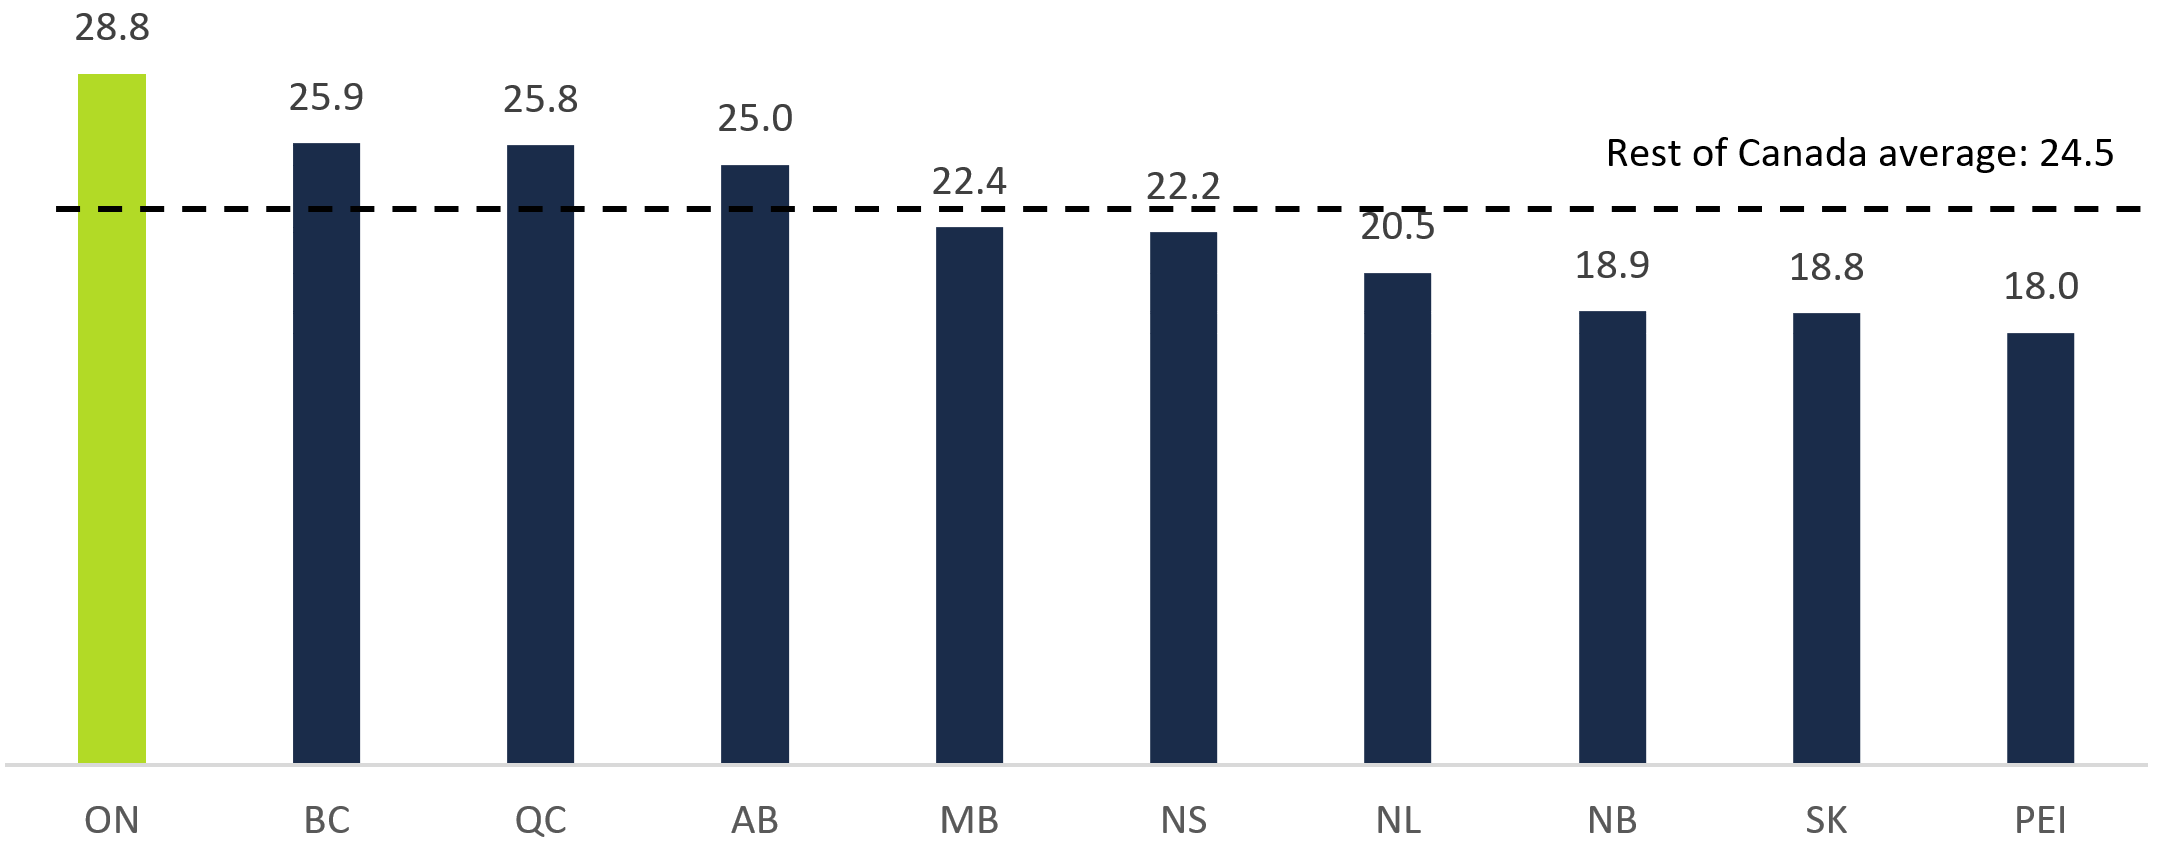 This chart shows the average commute time to work by province in 2016 in minutes. The chart shows that the average commute time to work was 28.8 minutes in Ontario, 25.9 minutes in British Columbia, 25.8 minutes in Quebec, 25.0 minutes in Alberta, 22.4 minutes in Manitoba, 22.2 minutes in Nova Scotia, 20.5 minutes in Newfoundland and Labrador, 18.9 minutes in New Brunswick, 18.8 minutes in Saskatchewan and 18.0 minutes in Prince Edward Island. This chart highlights that the average commute time to work across Canada excluding Ontario was 24.5 minutes.